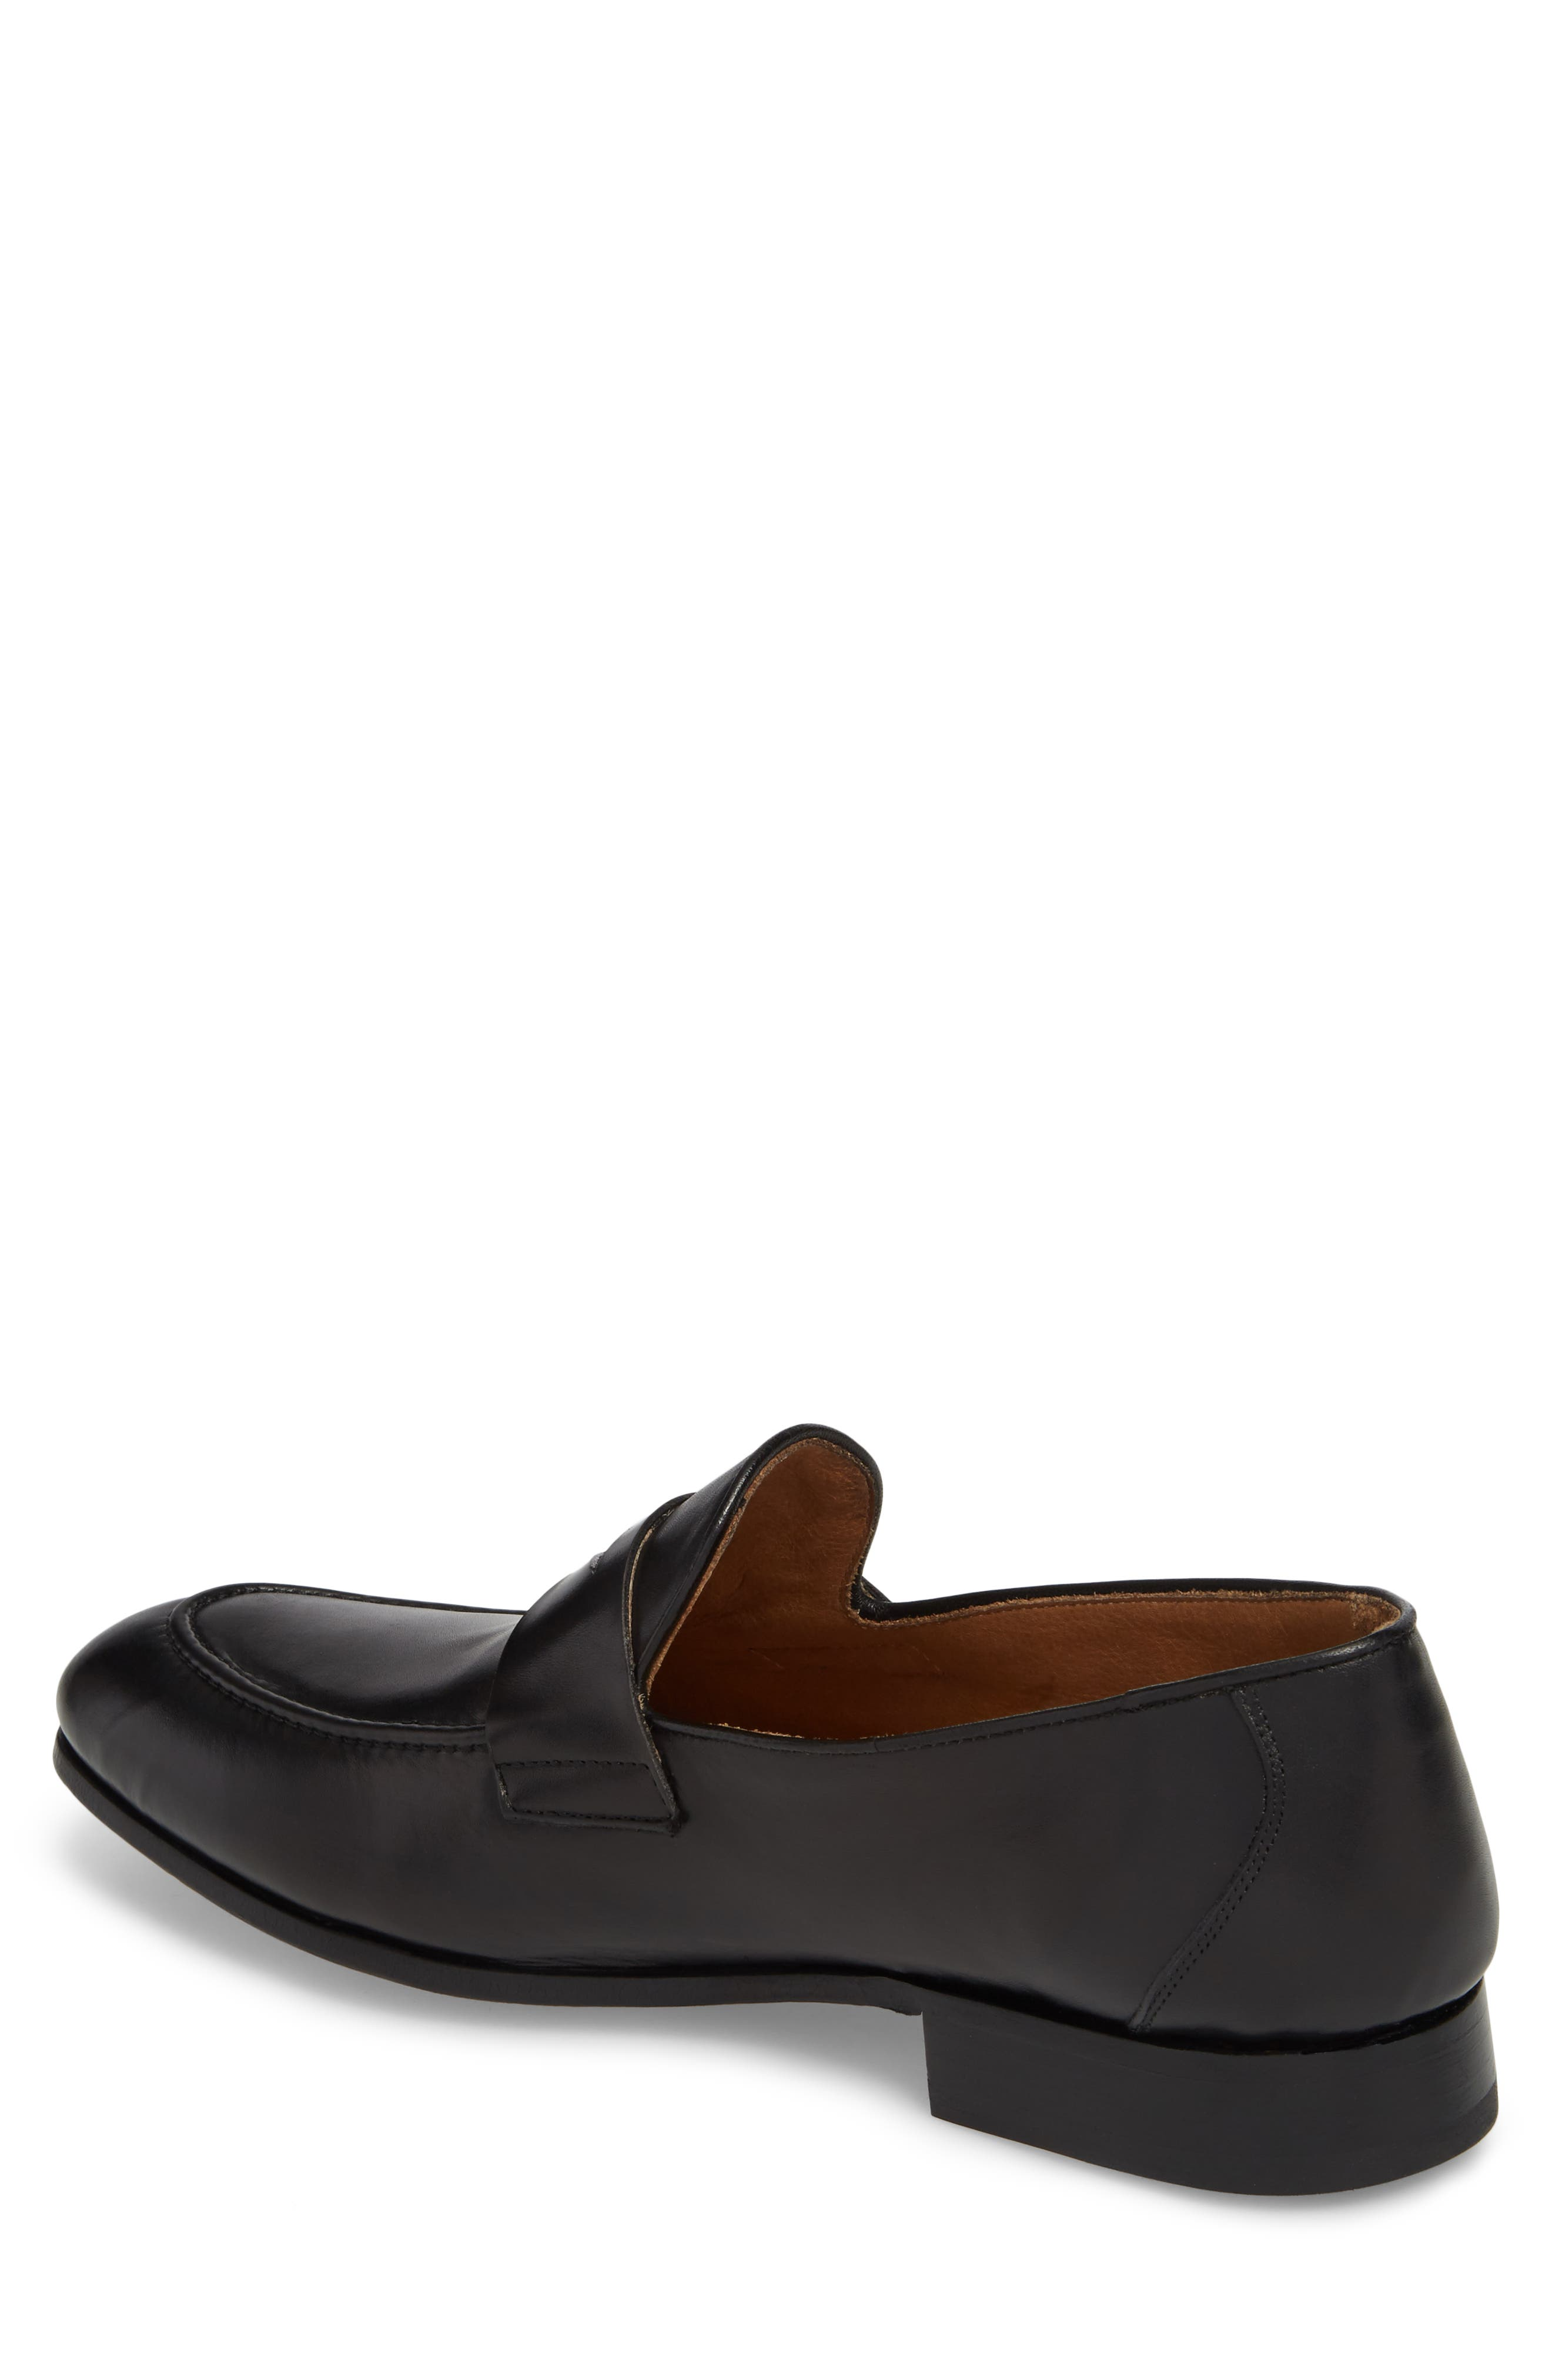 Alejo Apron Toe Penny Loafer,                             Alternate thumbnail 2, color,                             BLACK LEATHER